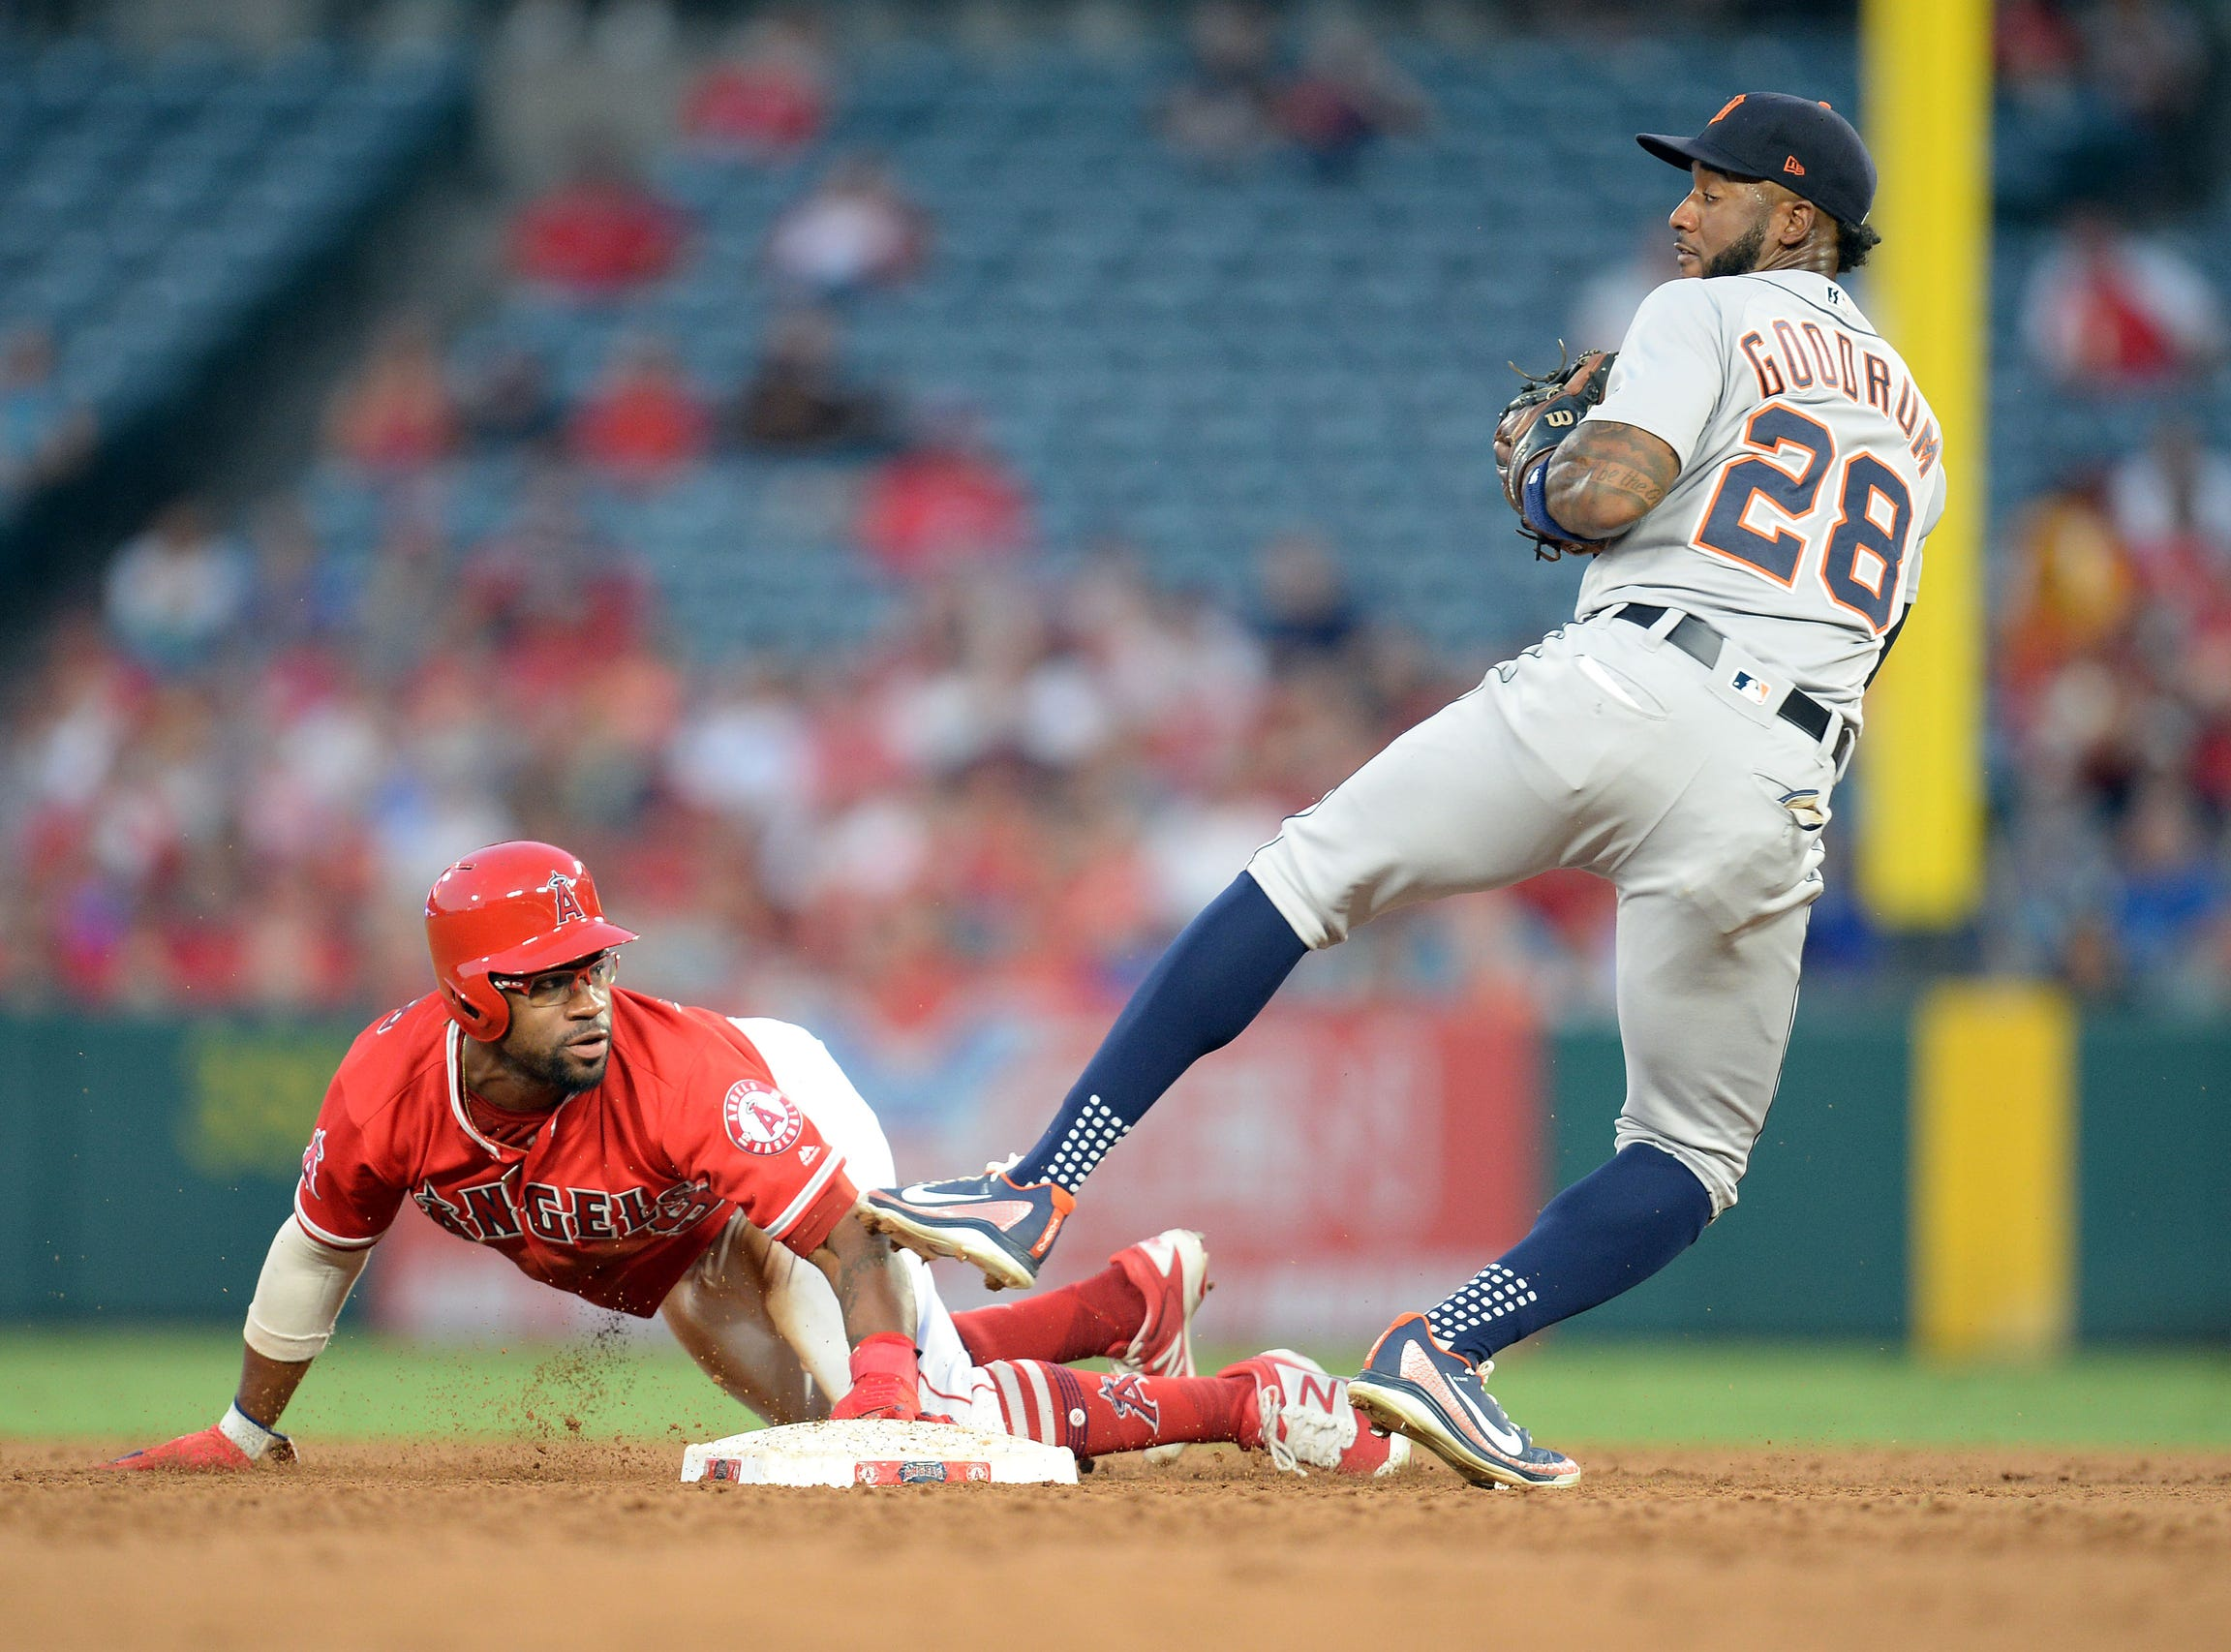 Angels left fielder Eric Young Jr. steals second against Tigers second baseman Niko Goodrum in the first inning on Tuesday, Aug. 7, 2018, in Anaheim, Calif.